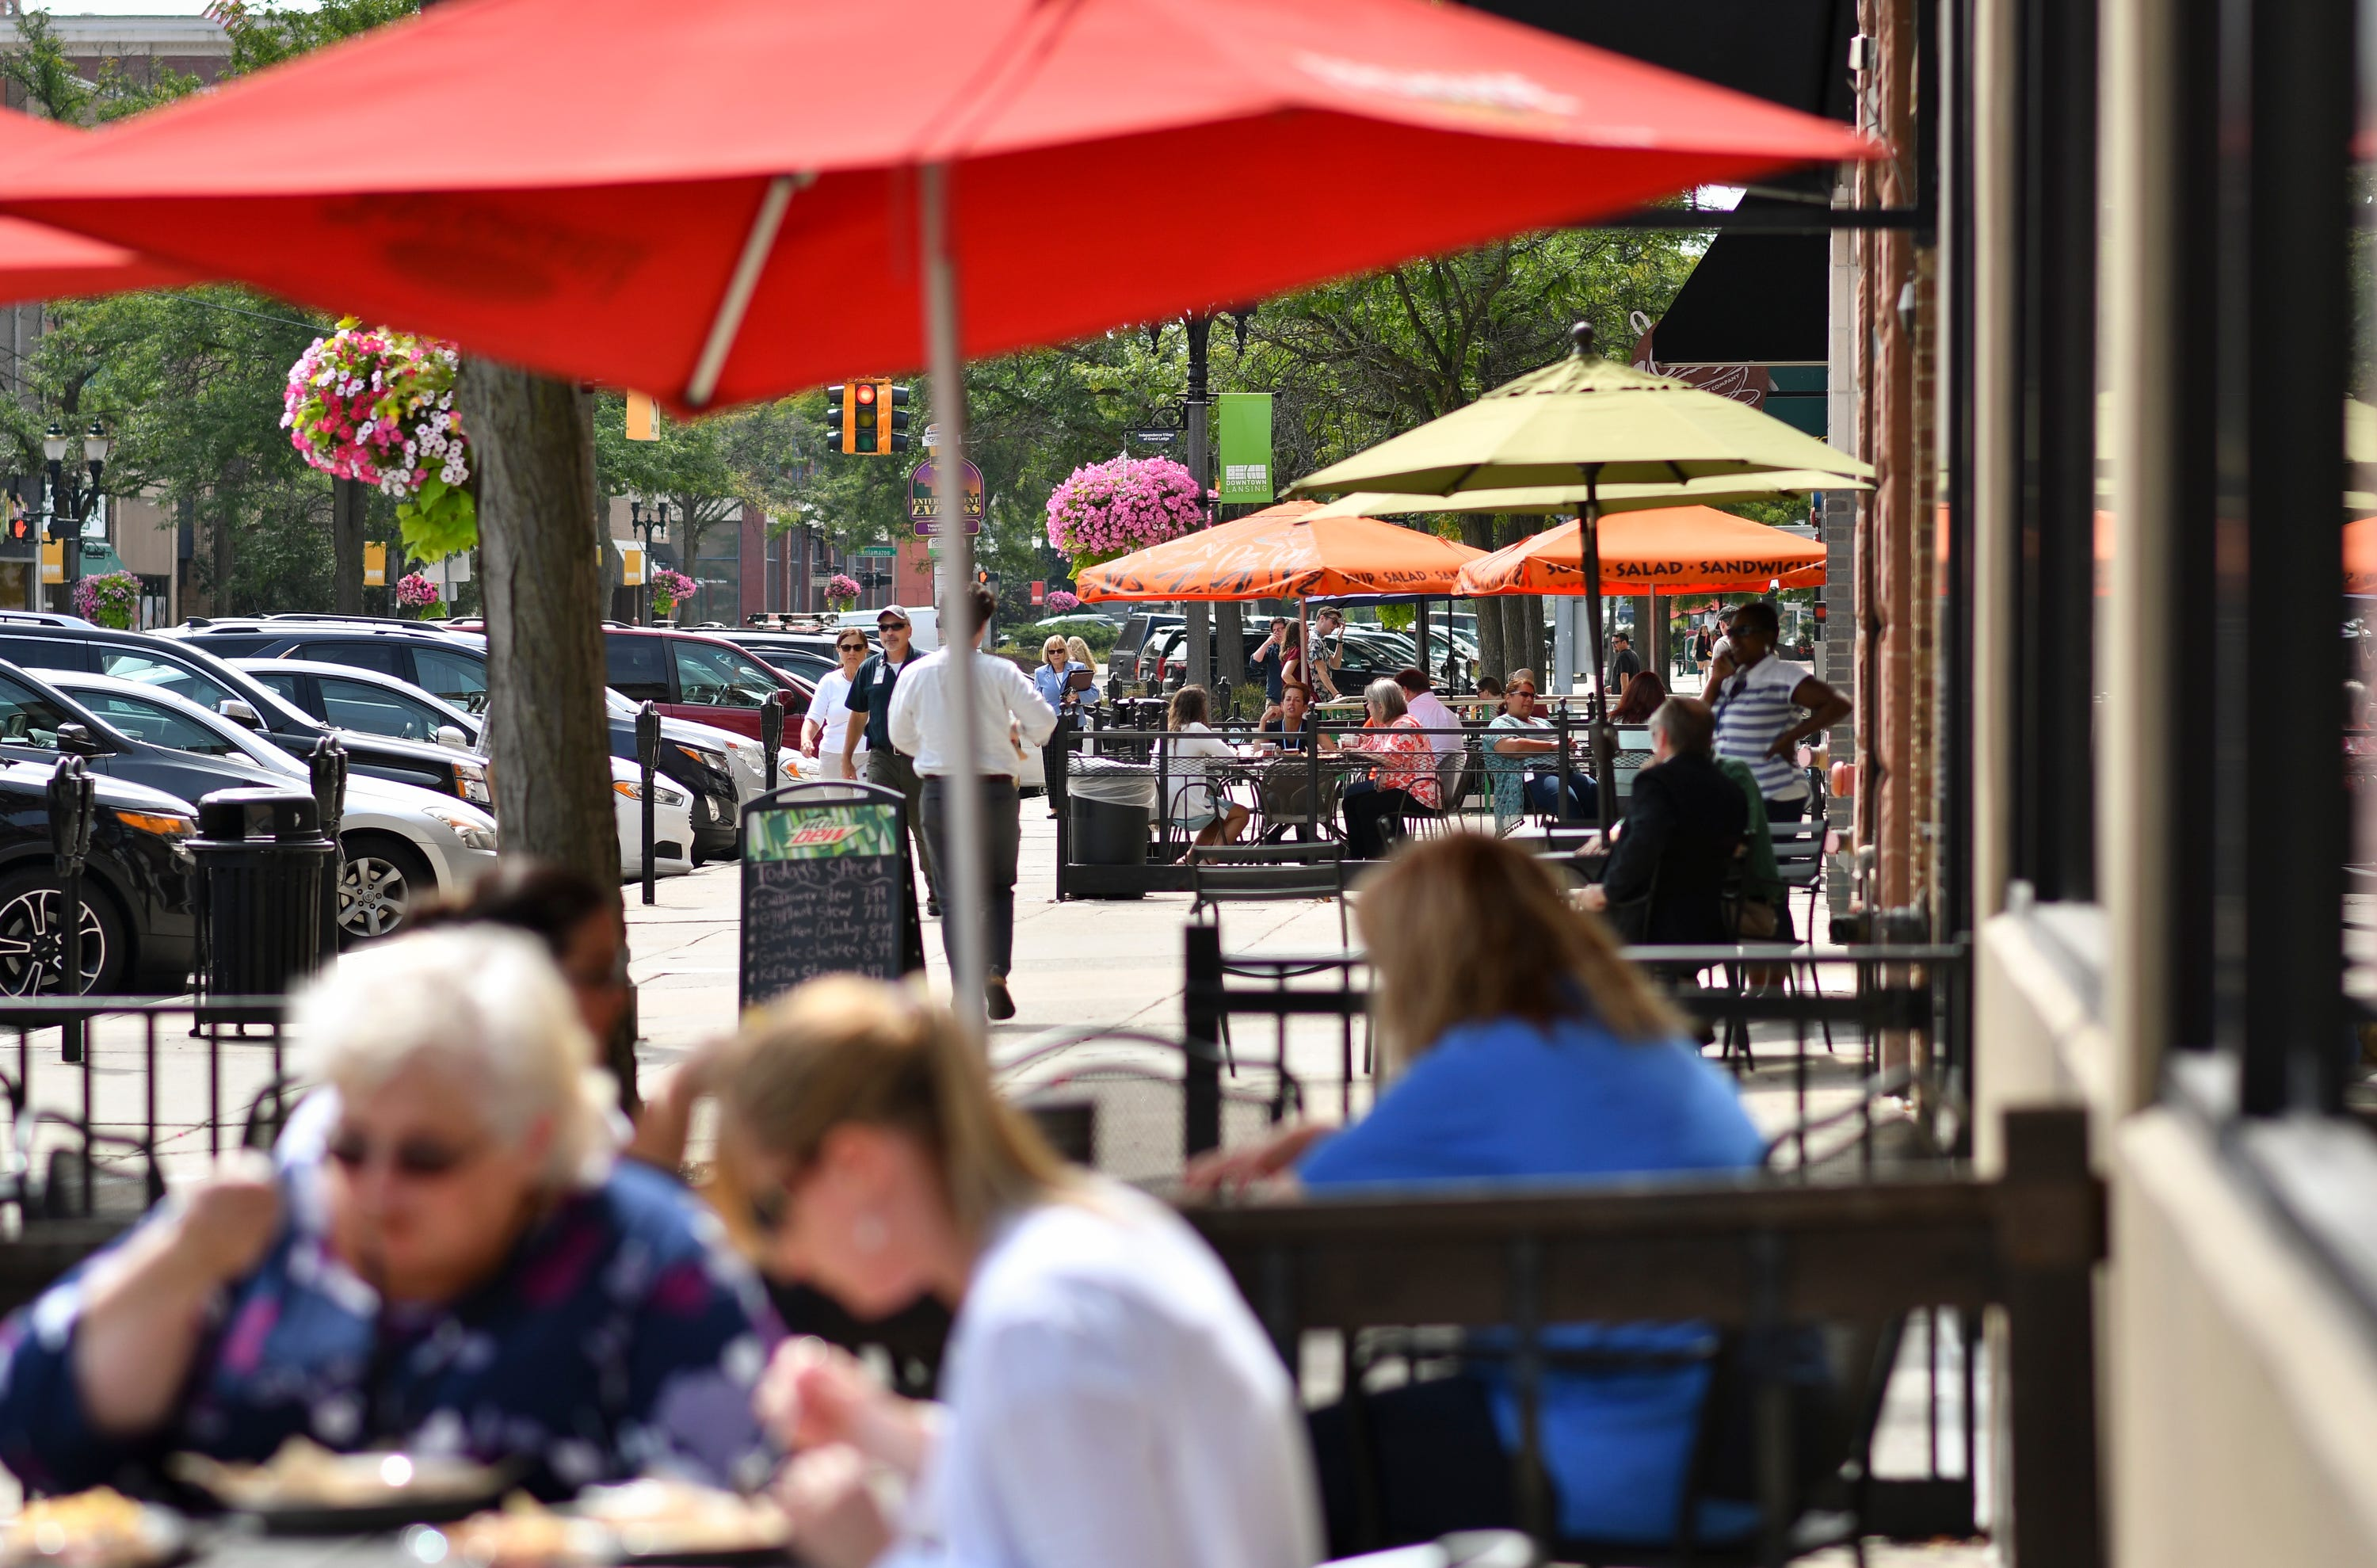 People eat outdoors during the lunch hour Friday, Aug. 24, 2018, in downtown Lansing on S. Washington Square.